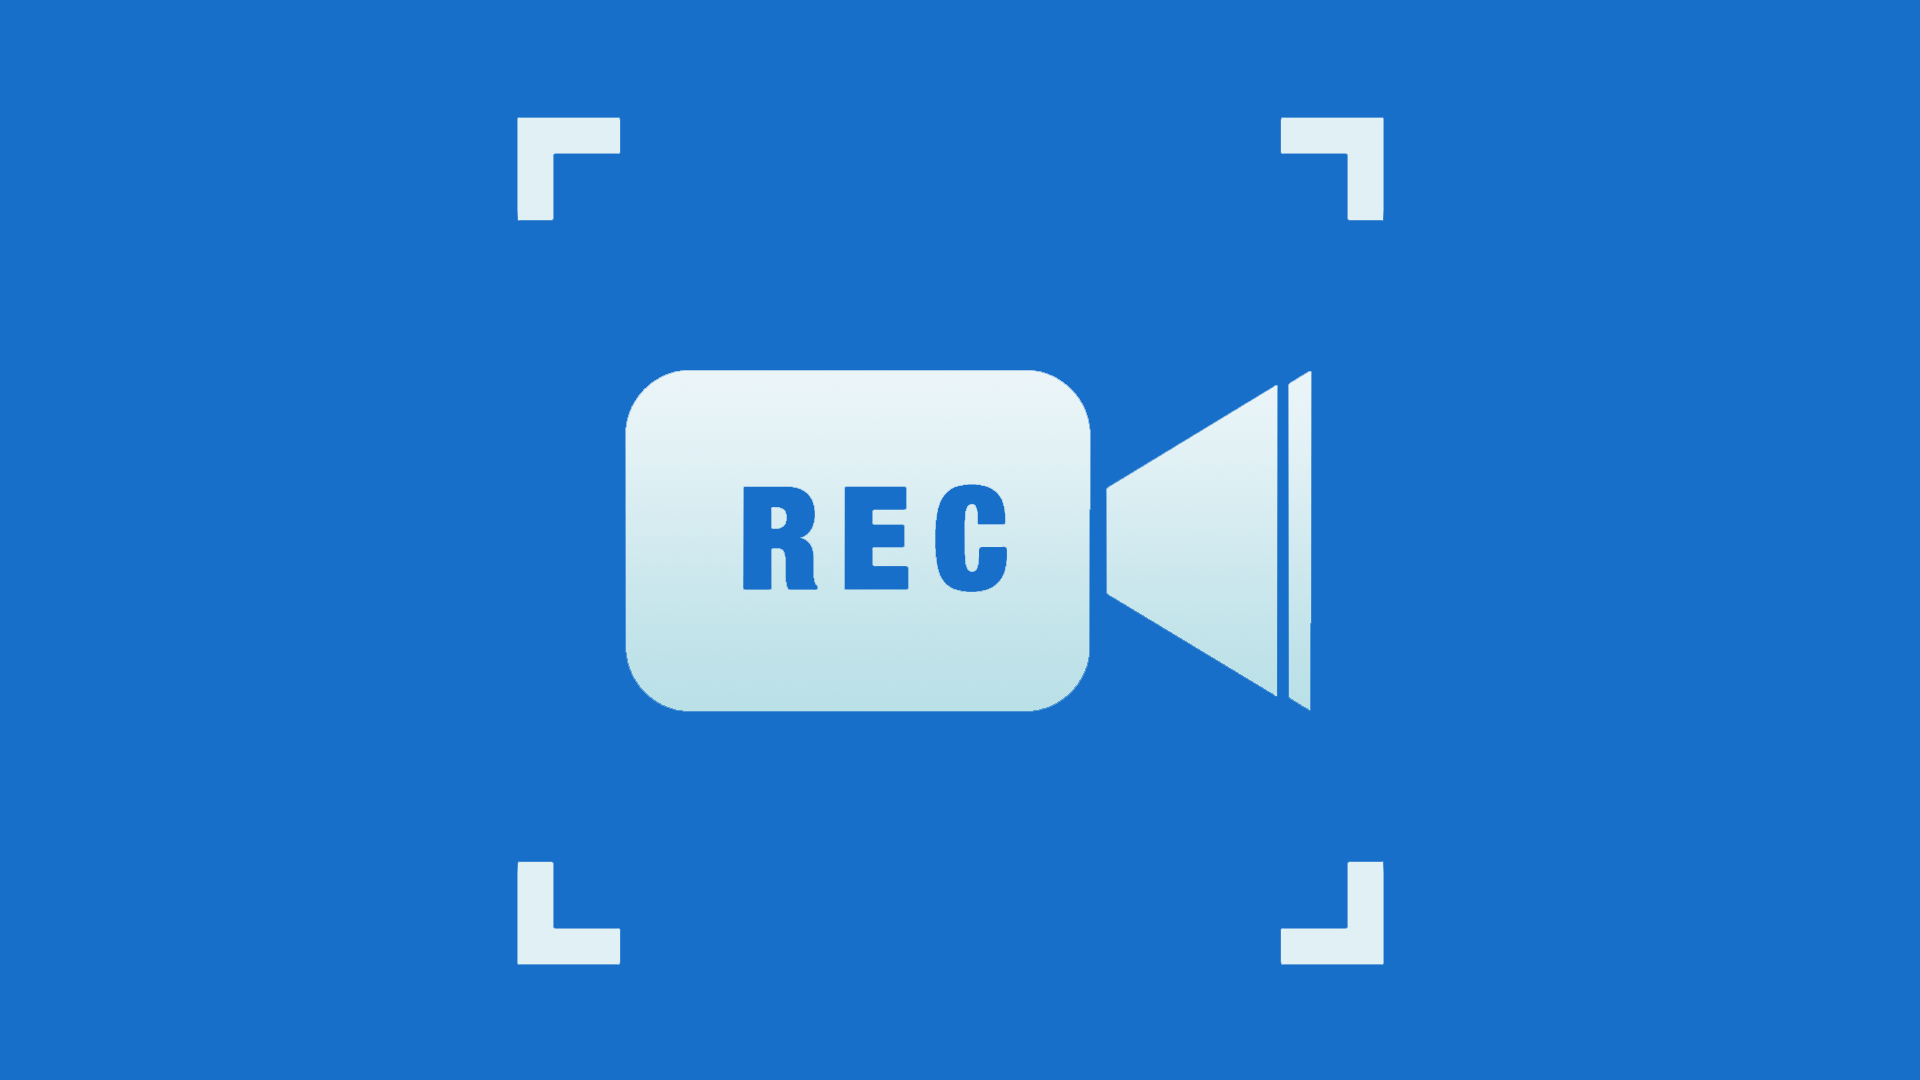 Get Screen Recorder Pro - Display, Window, Region - Microsoft Store